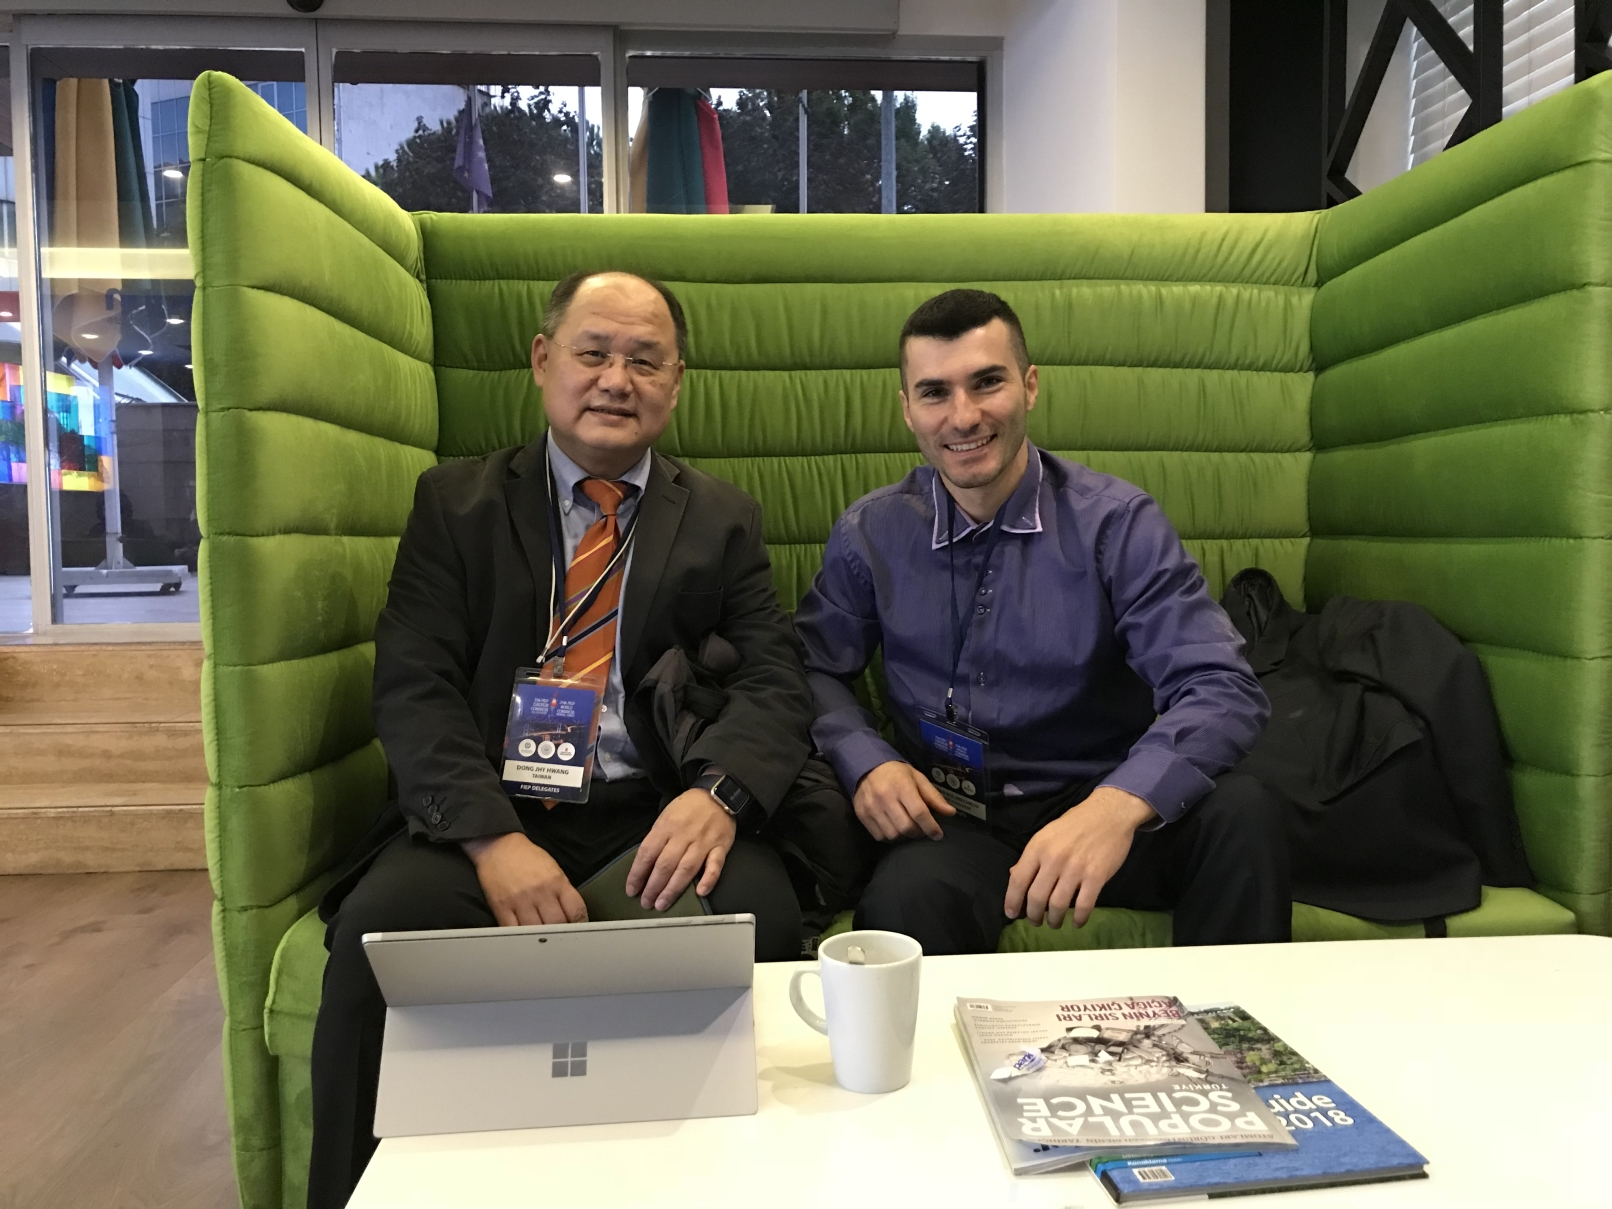 Prof Tony Hwang and Dr Stefan Kolimechkov at the 13th European and 29th World FIEP Congress in Istanbul, 2018